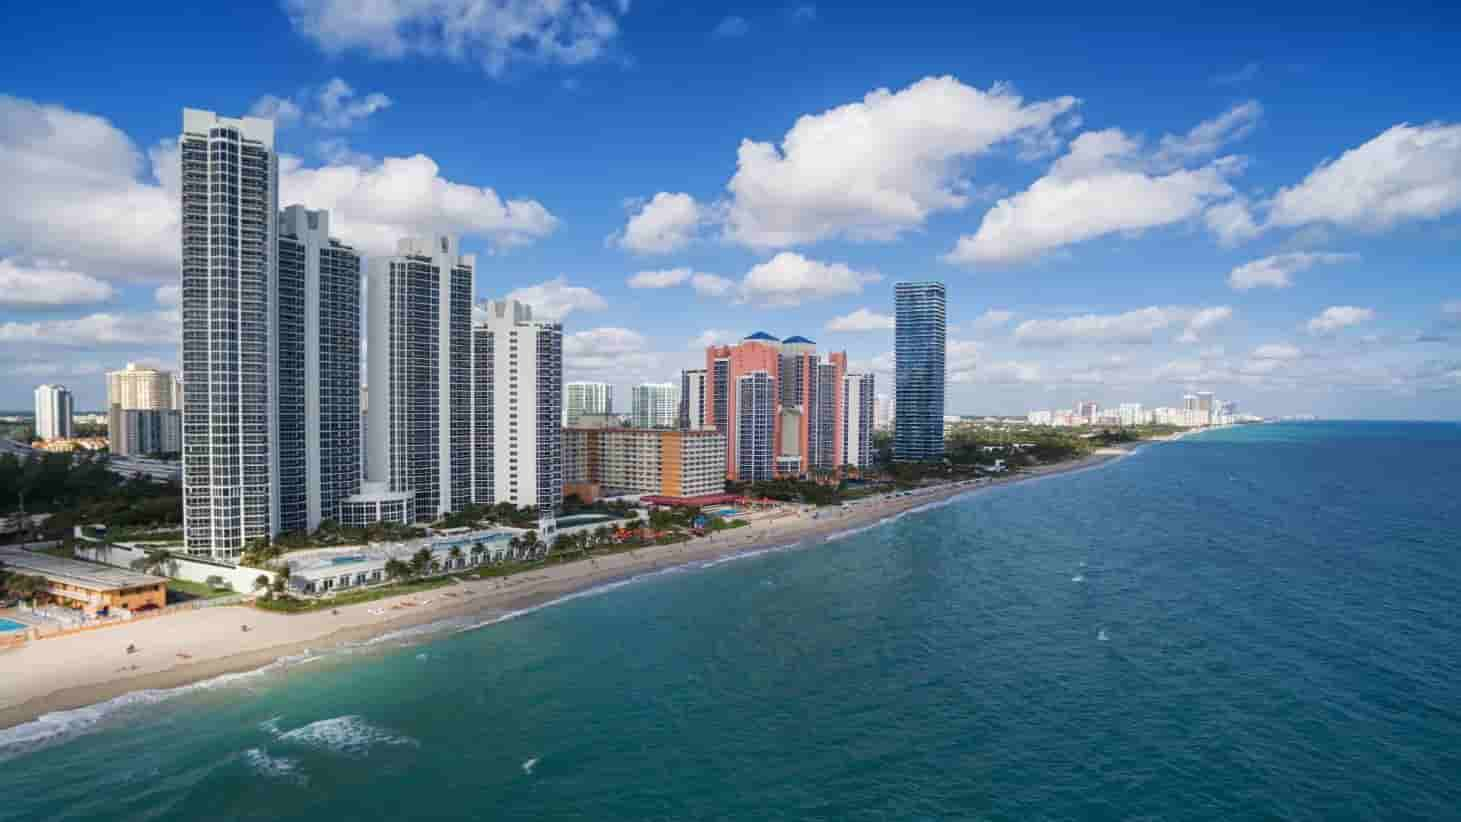 boat rentals in North Miami Beach